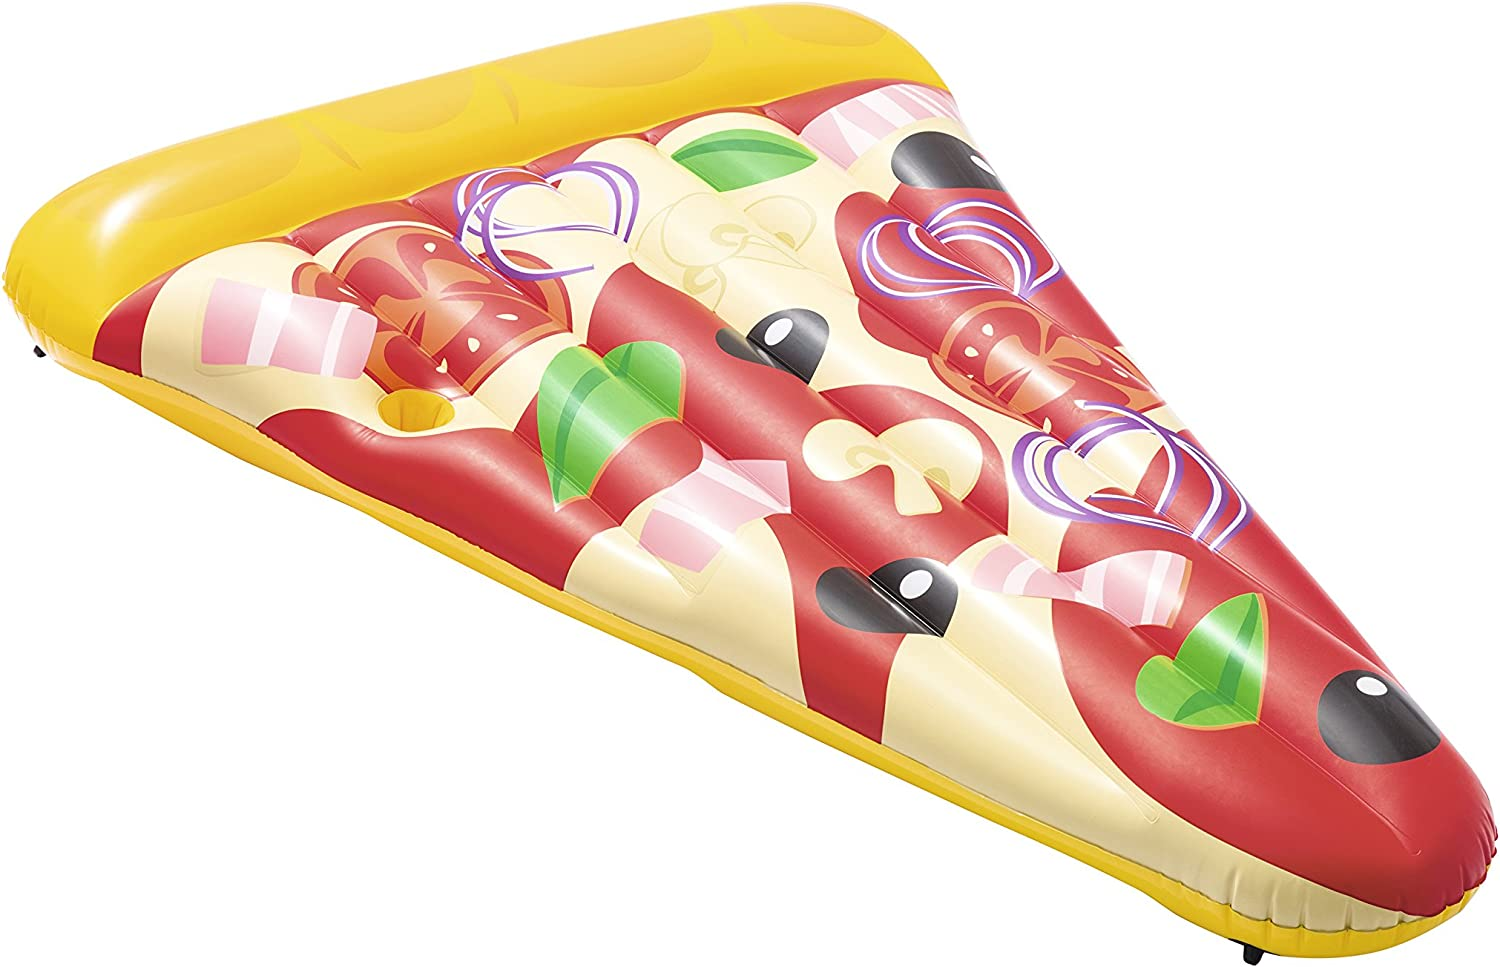 Pizza Slice Inflatable Giant Swimming Pool Float Raft Lounger